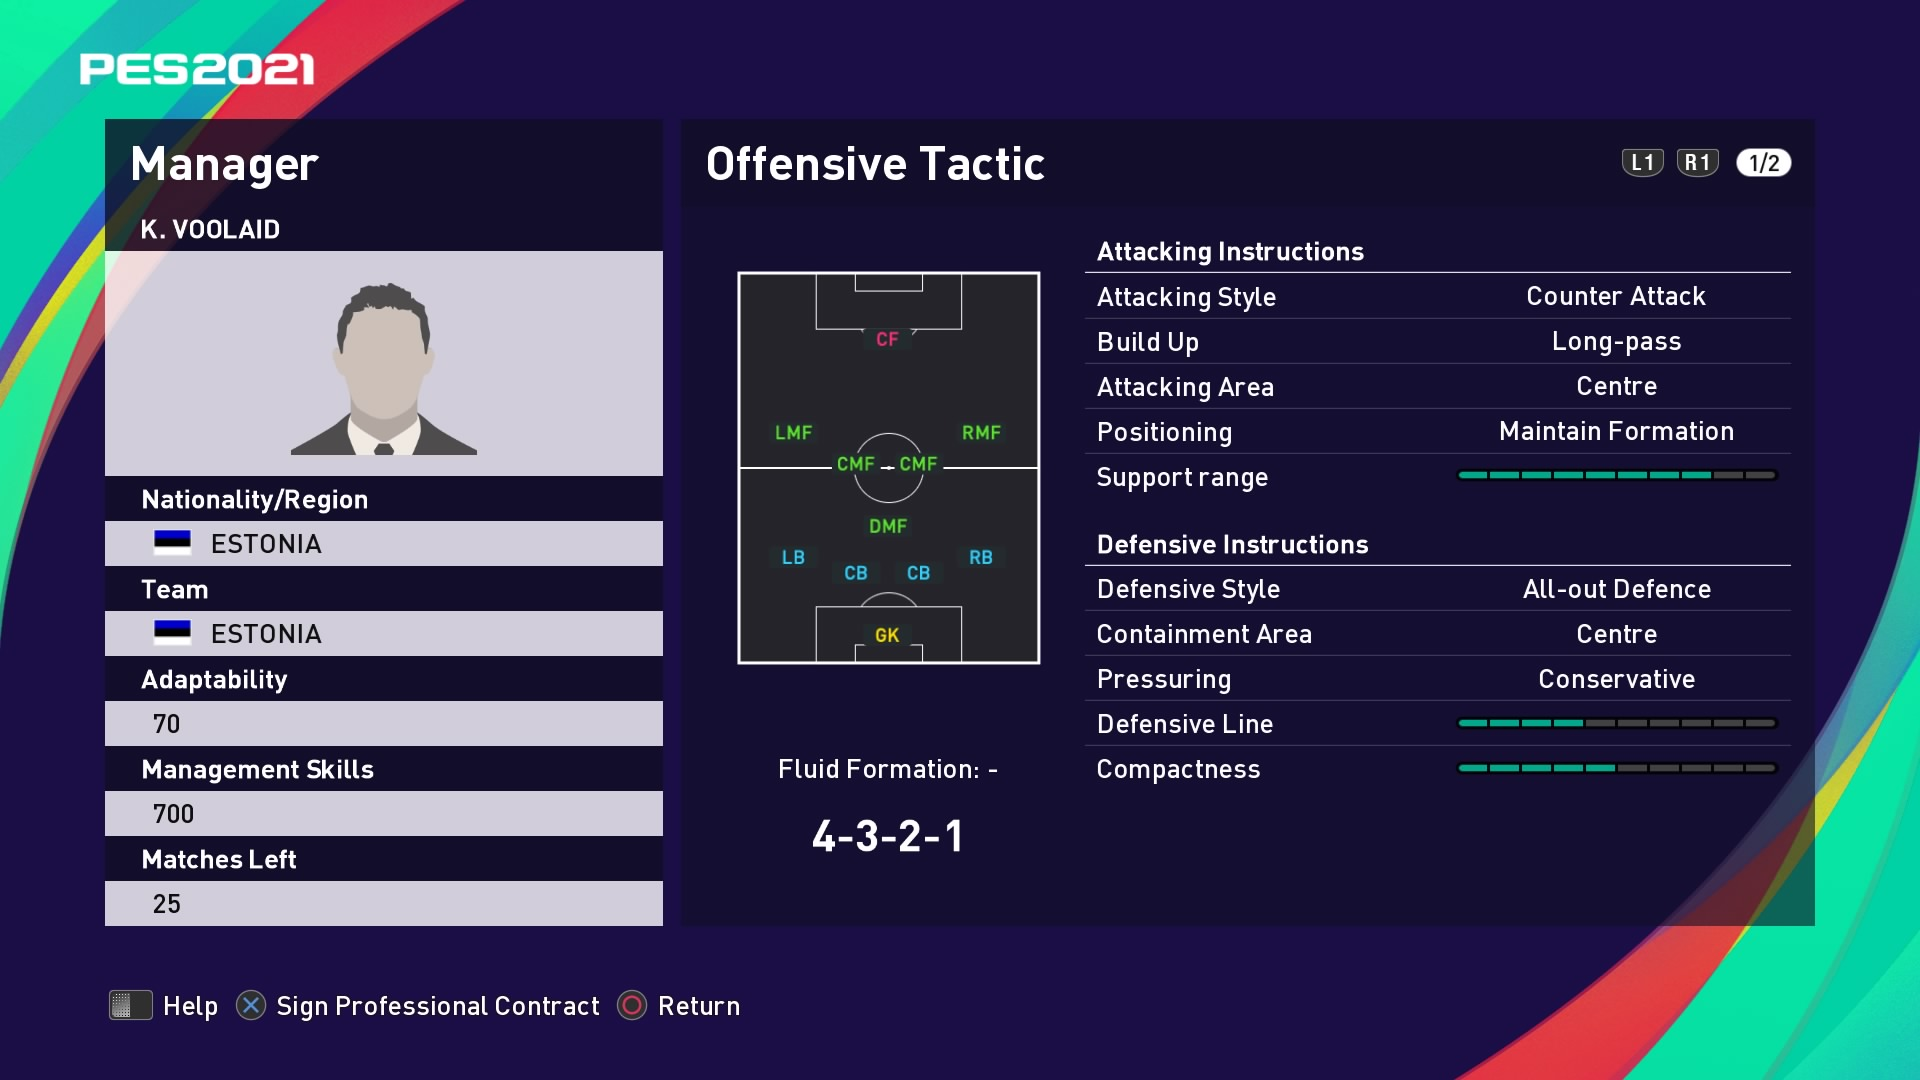 K. Voolaid (Karel Voolaid) Offensive Tactic in PES 2021 myClub